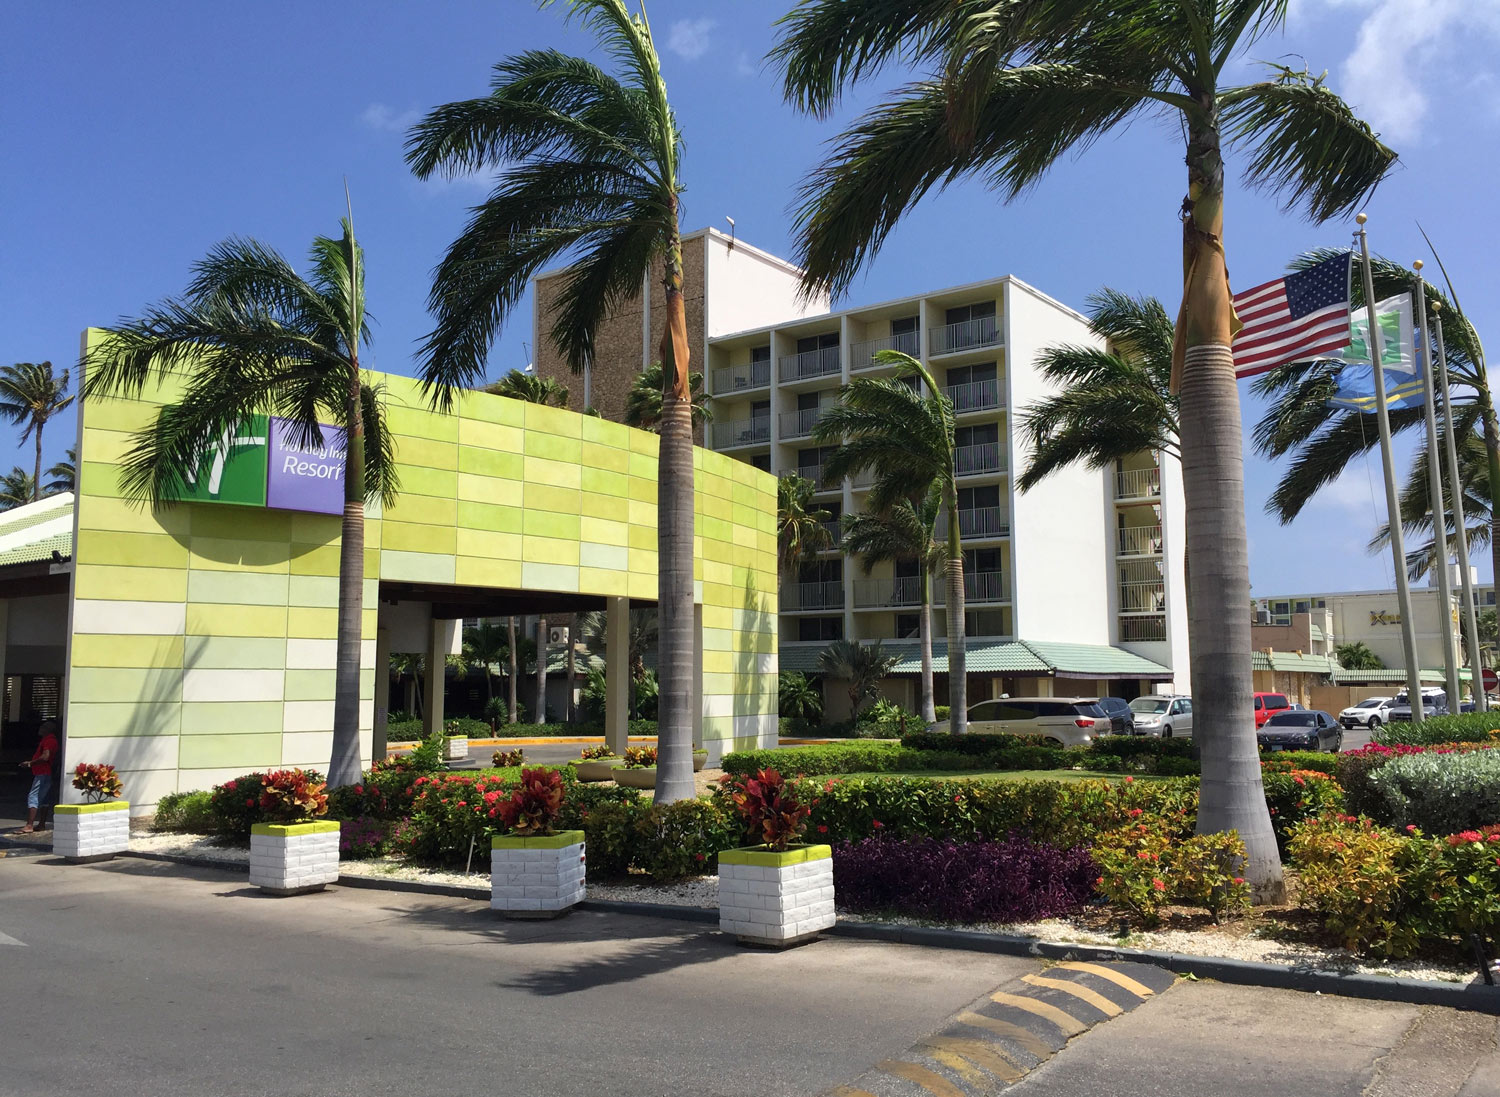 Holiday-Inn-Aruba-Palm-beach-front-entrance.jpg